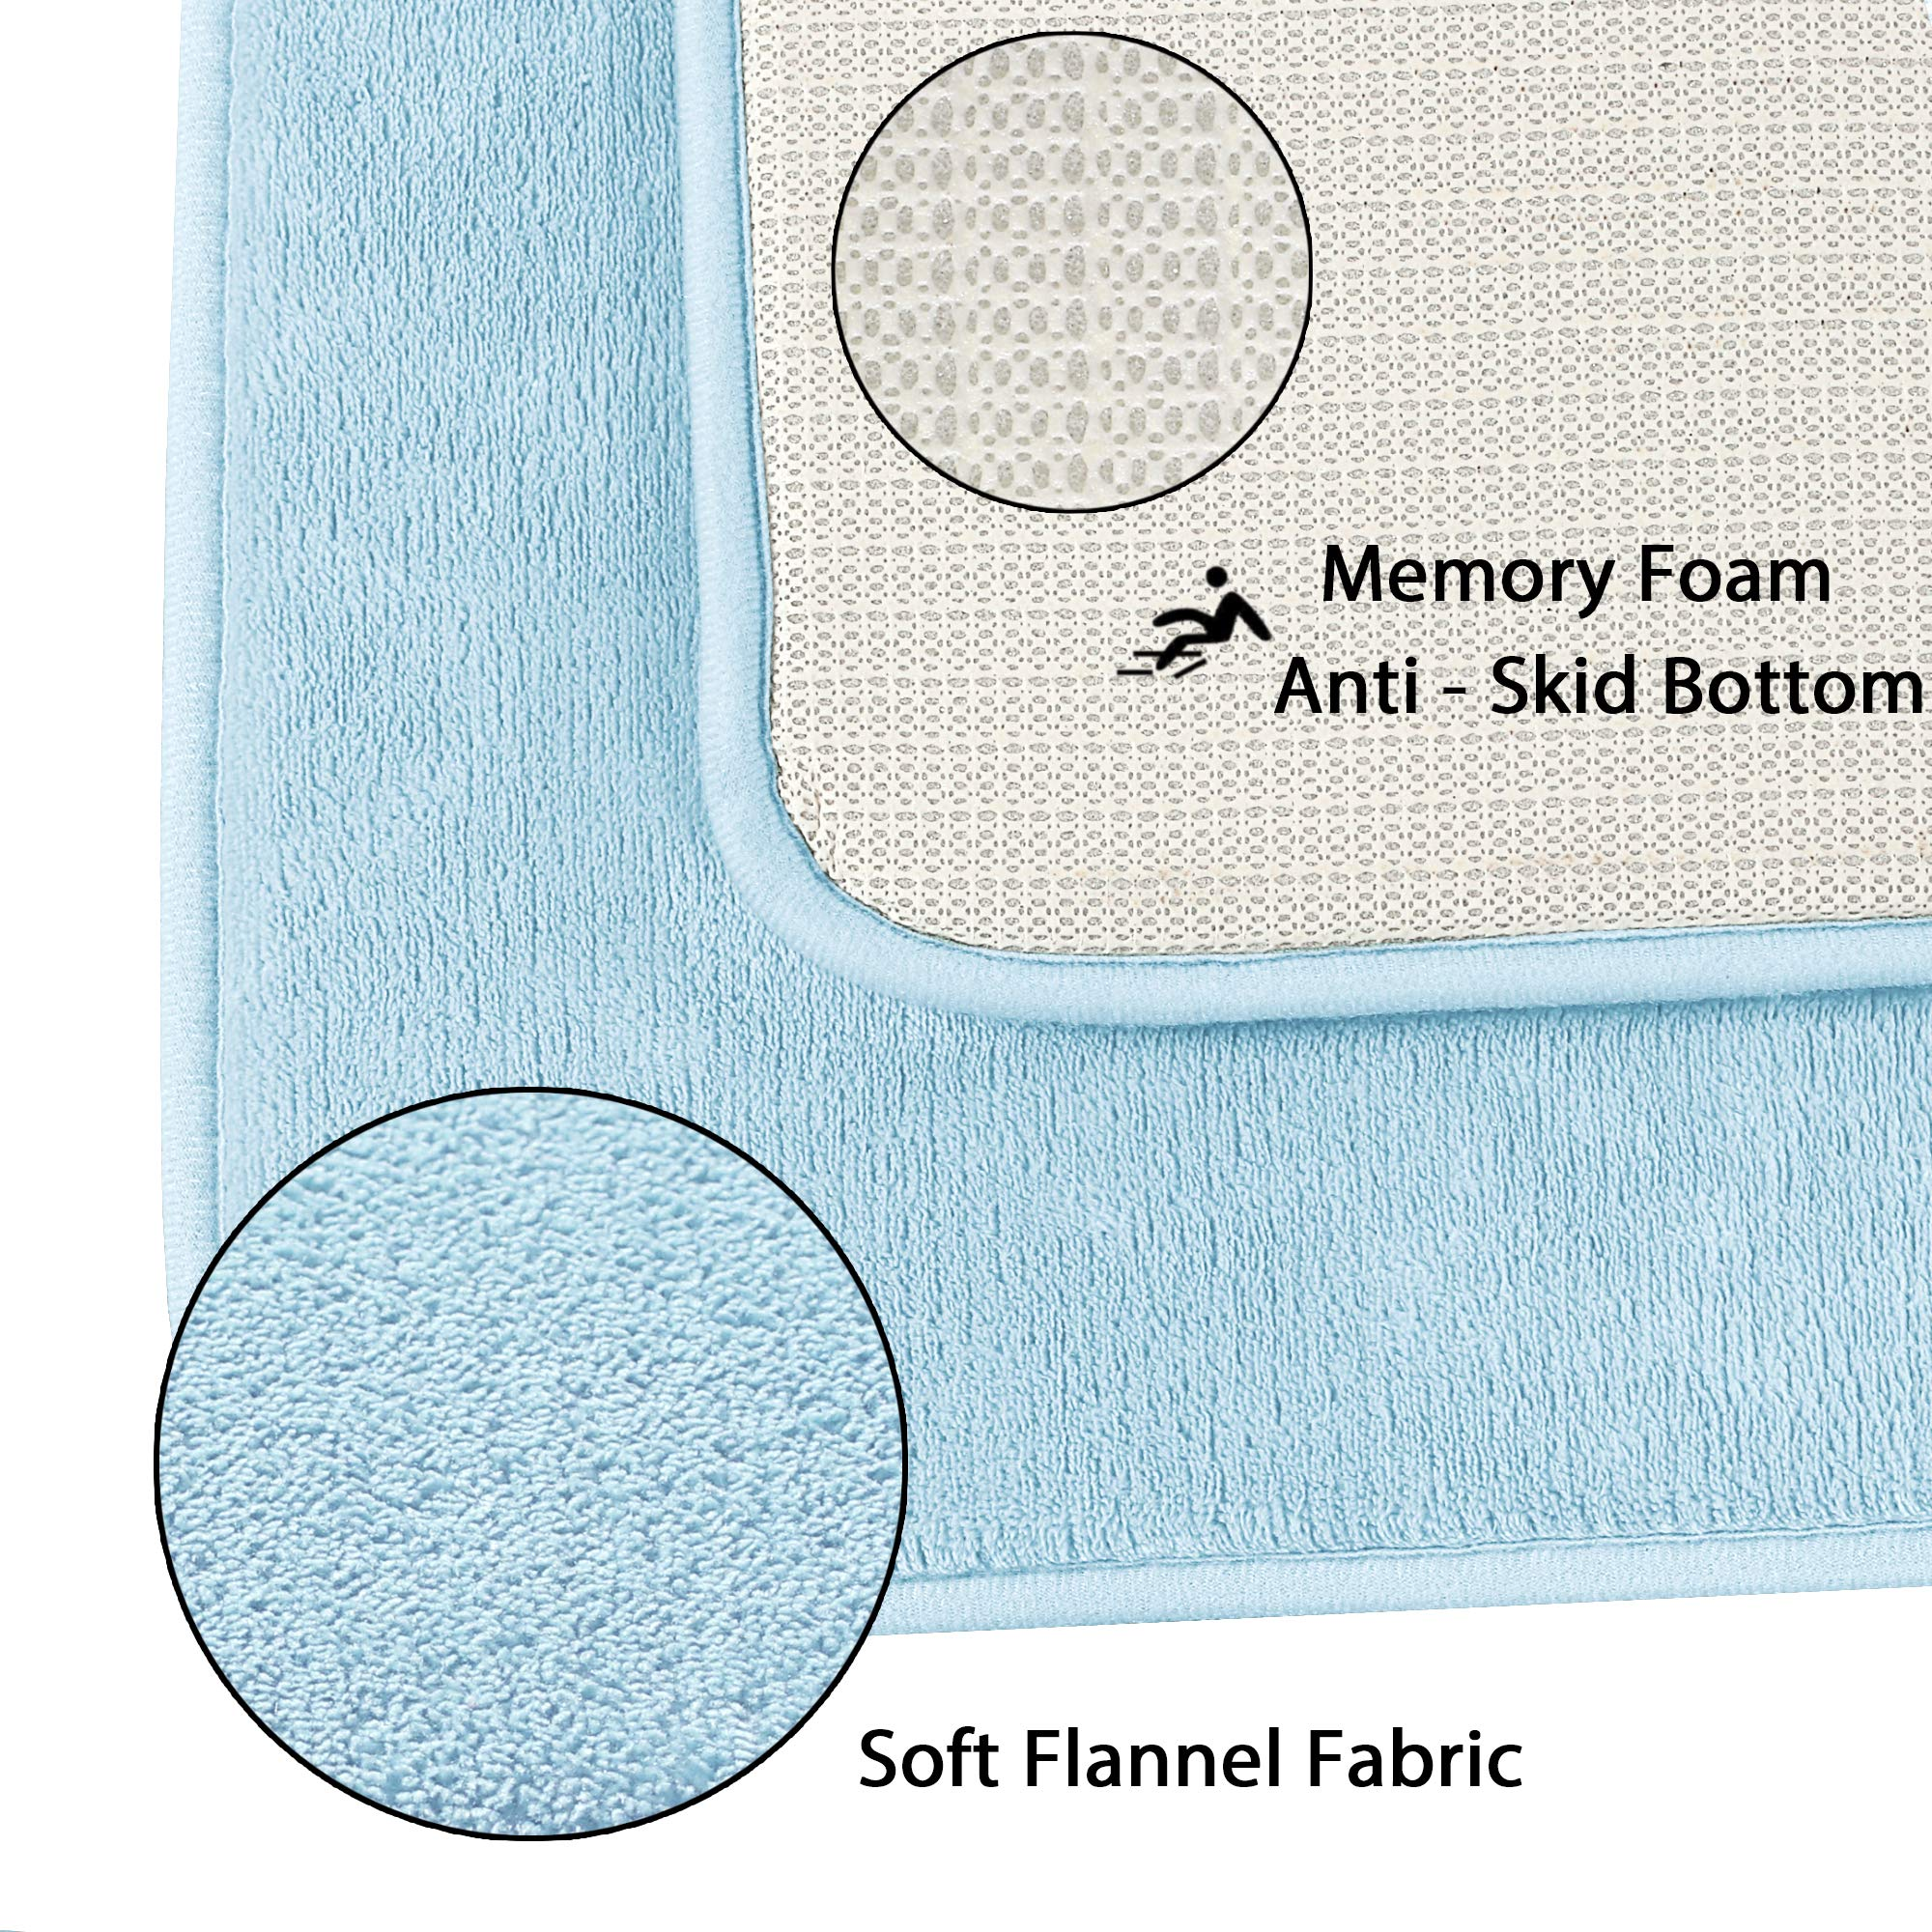 Memory Foam Bathroom Rug Set Ultra Soft Flannel Floor Mats Tufted Bath Rug with Non-Slip Backing Microfiber Door Mat for Kitchen/Entryway/Living Room (Pack 2-17'' x 24''/ 20'' x 32''- Sky Blue) by Flamingo P (Image #6)